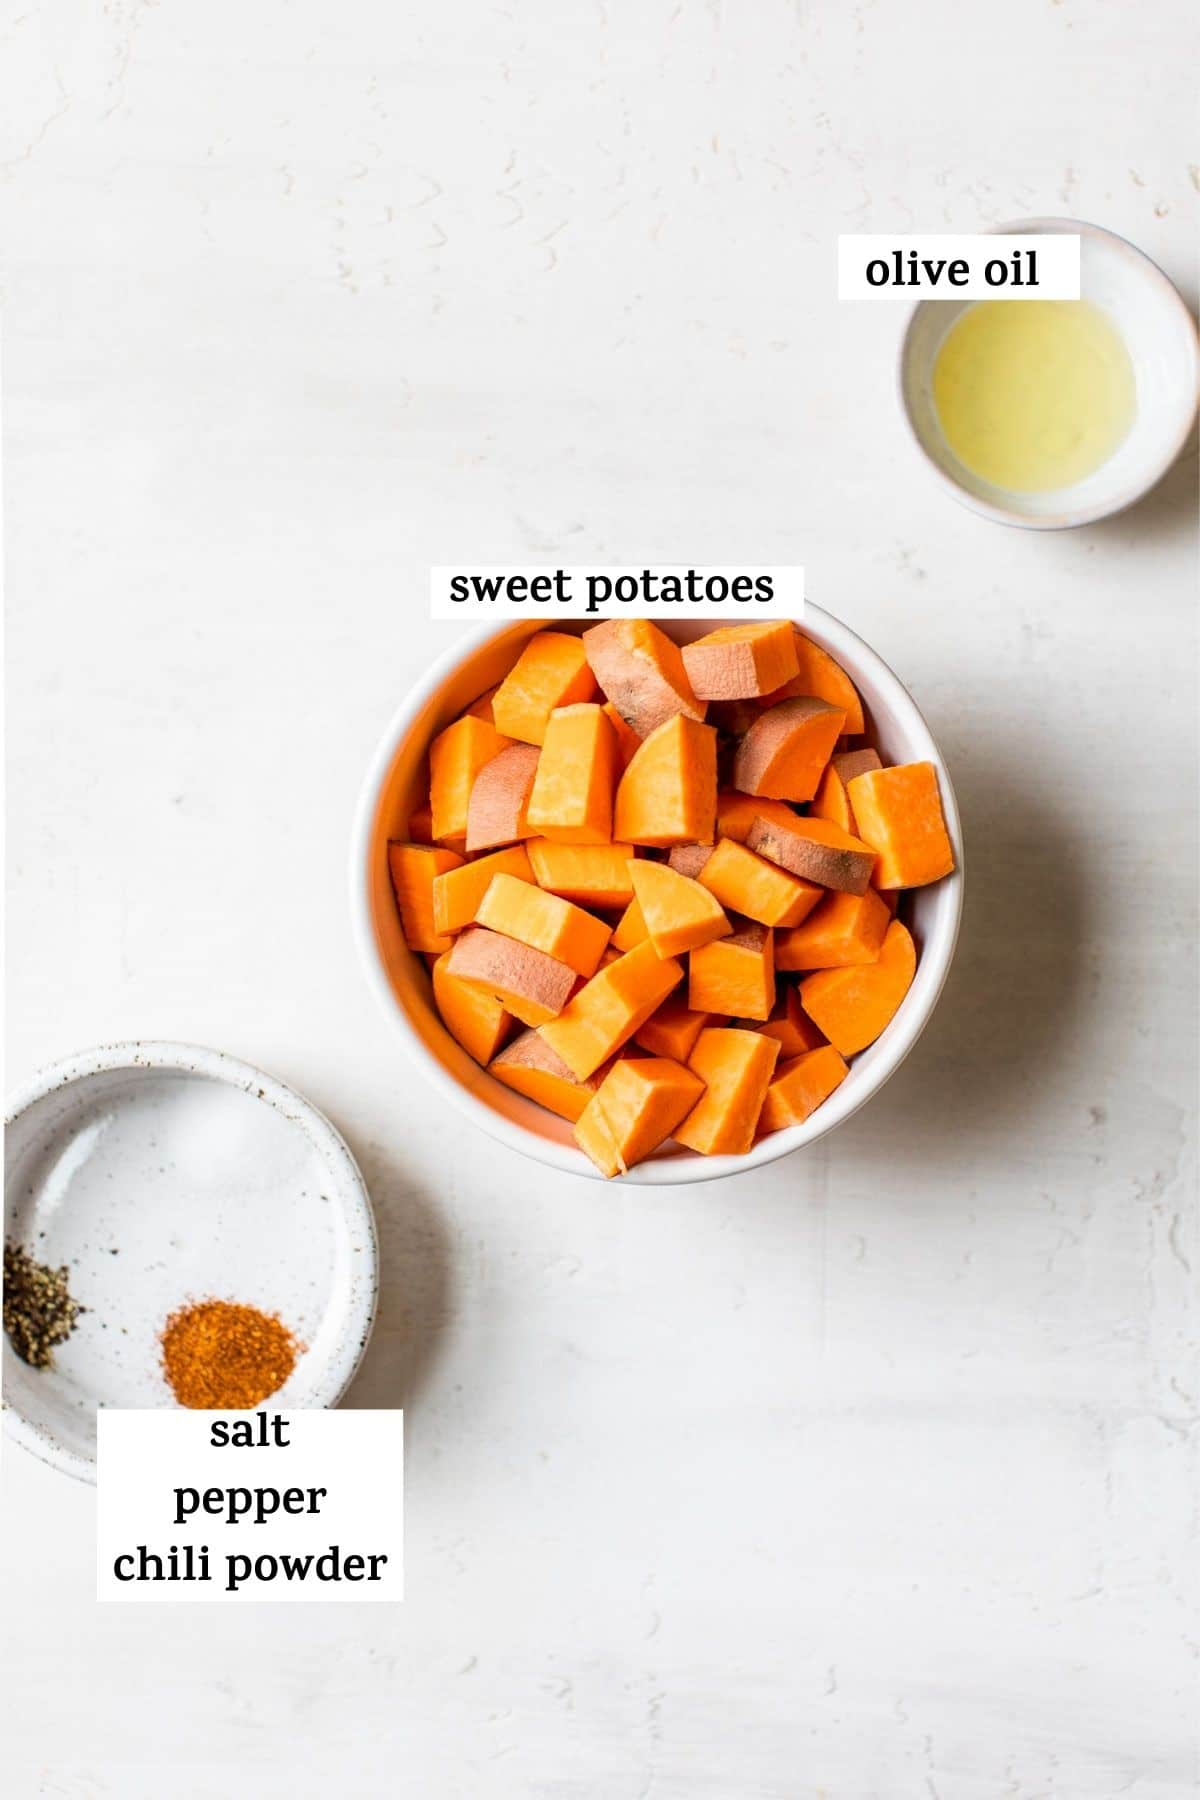 diced sweet potatoes in a bowl